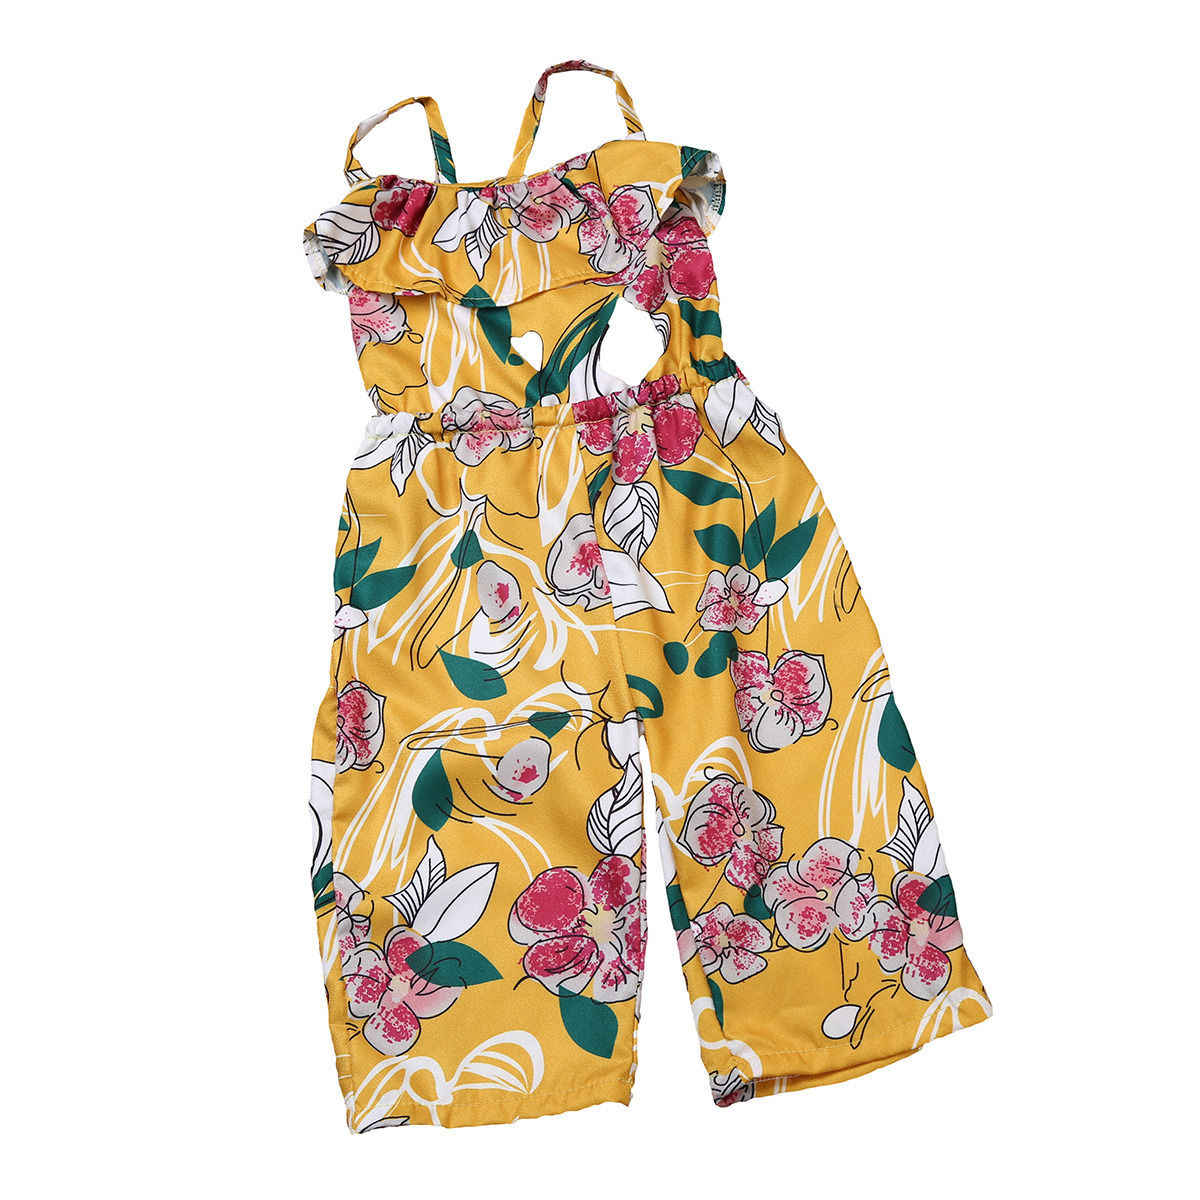 436f52d1dde Detail Feedback Questions about Baby Kids Girls Clothes Floral ...